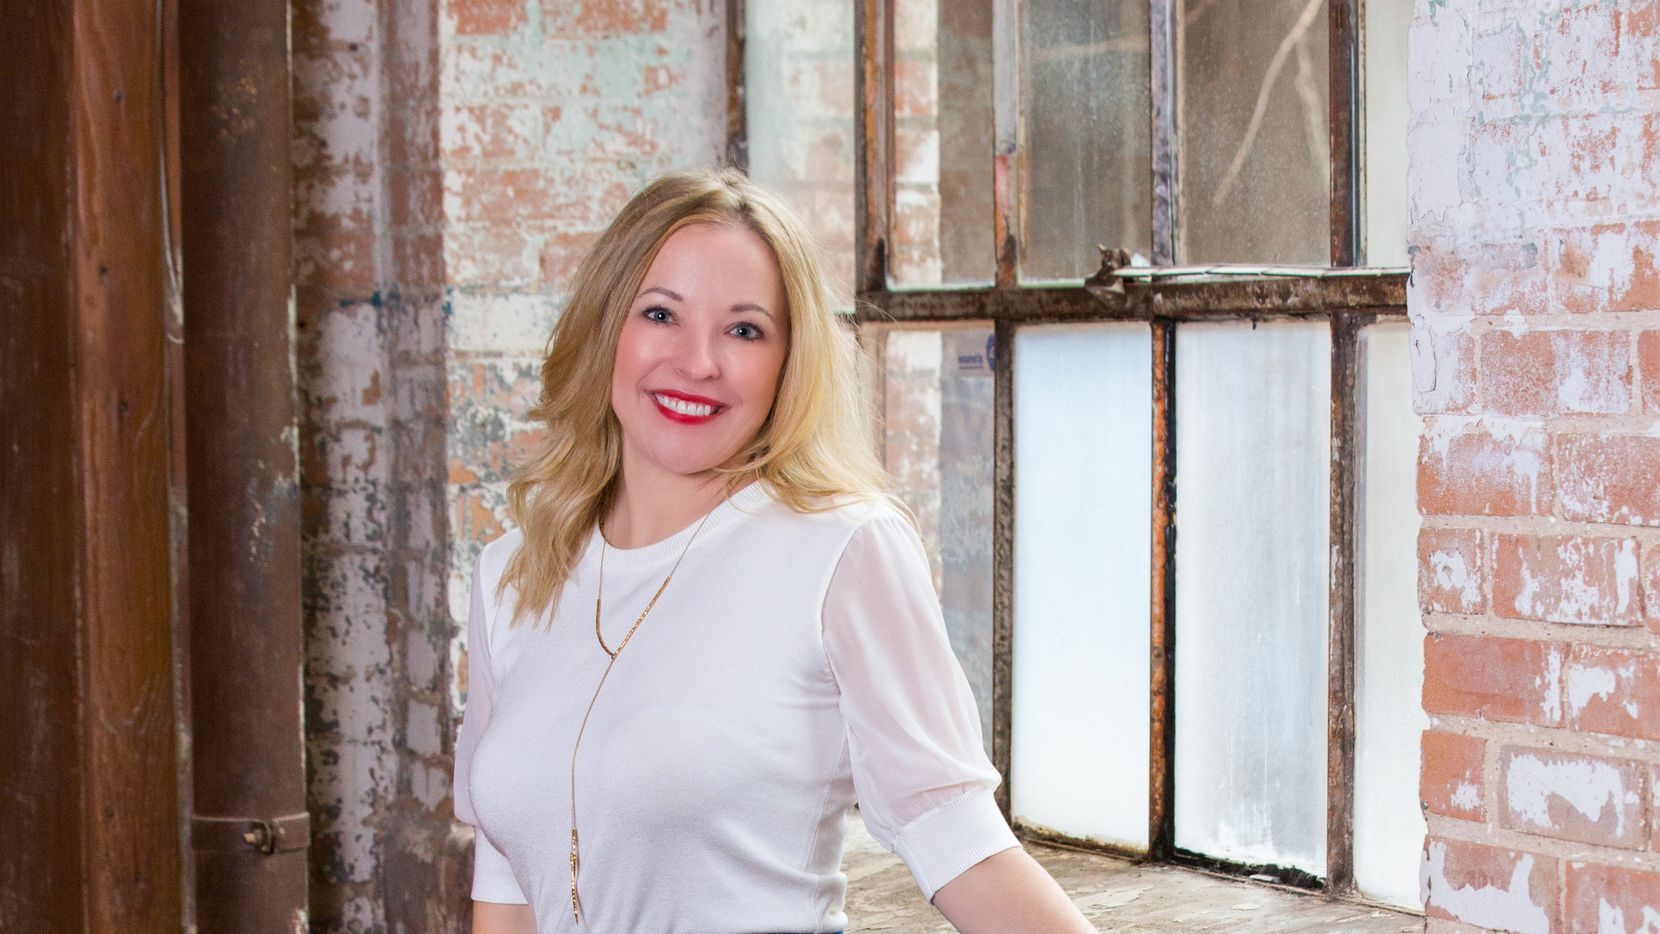 Allison Monroe, CEO and founder of Language Learning Market, said her technology empowers micro-level entrepreneurs to reach customers globally.